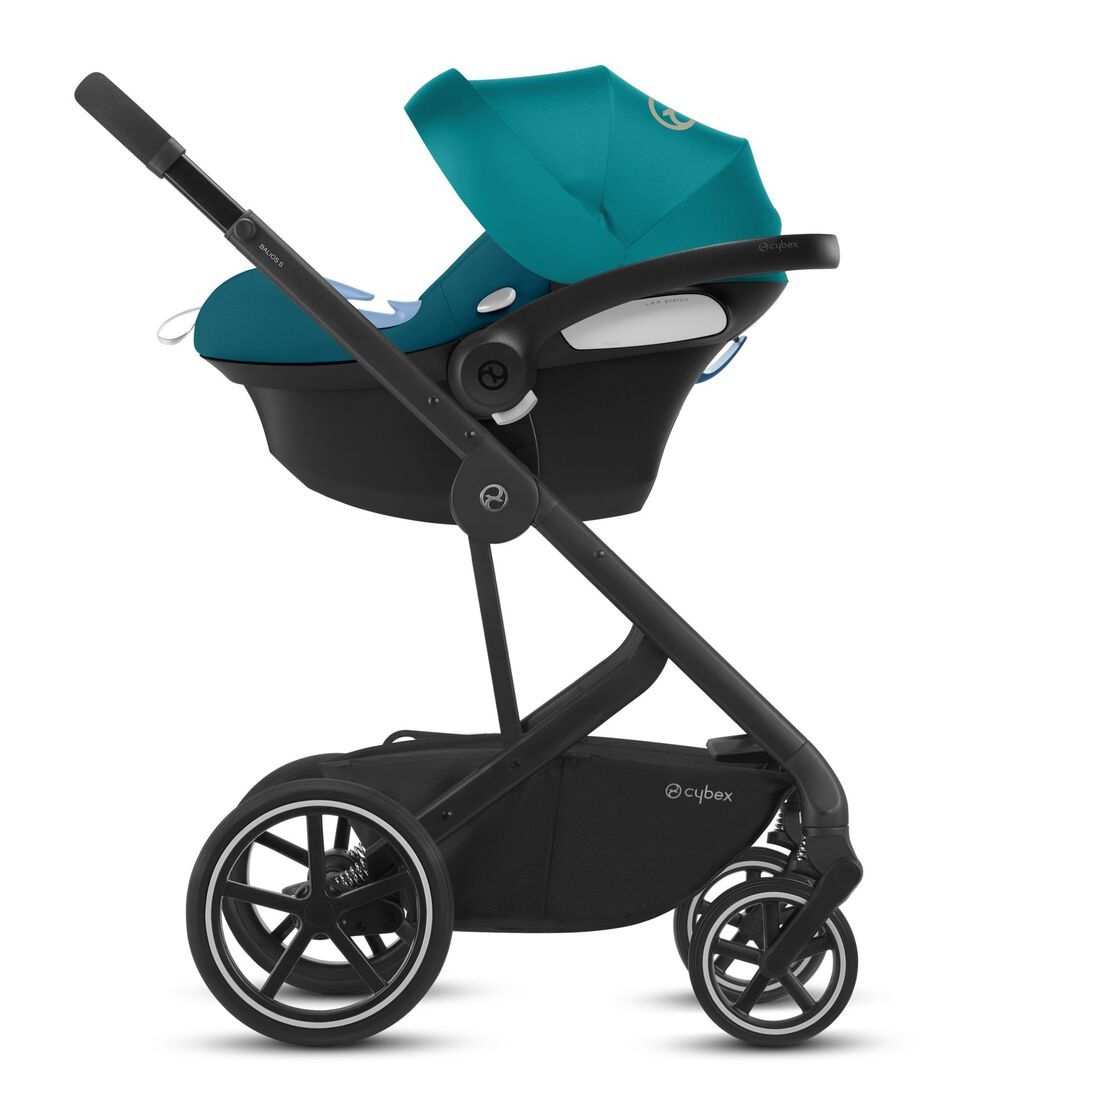 CYBEX Balios S Lux - River Blue (Black Frame) in River Blue (Black Frame) large image number 3